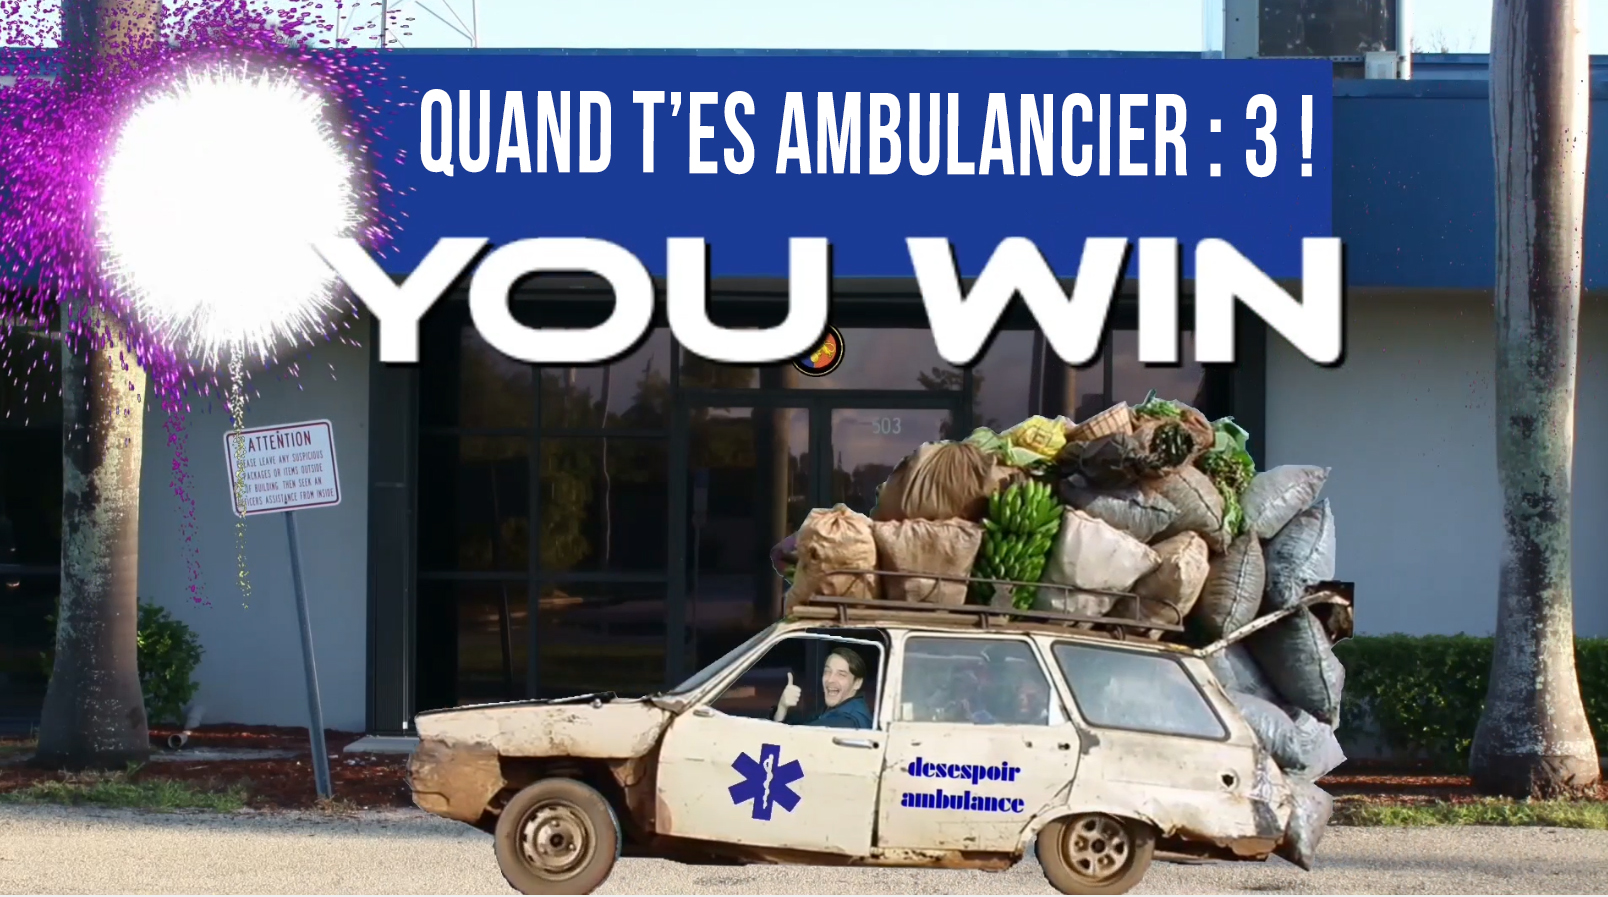 Quand t'es ambulancier #3